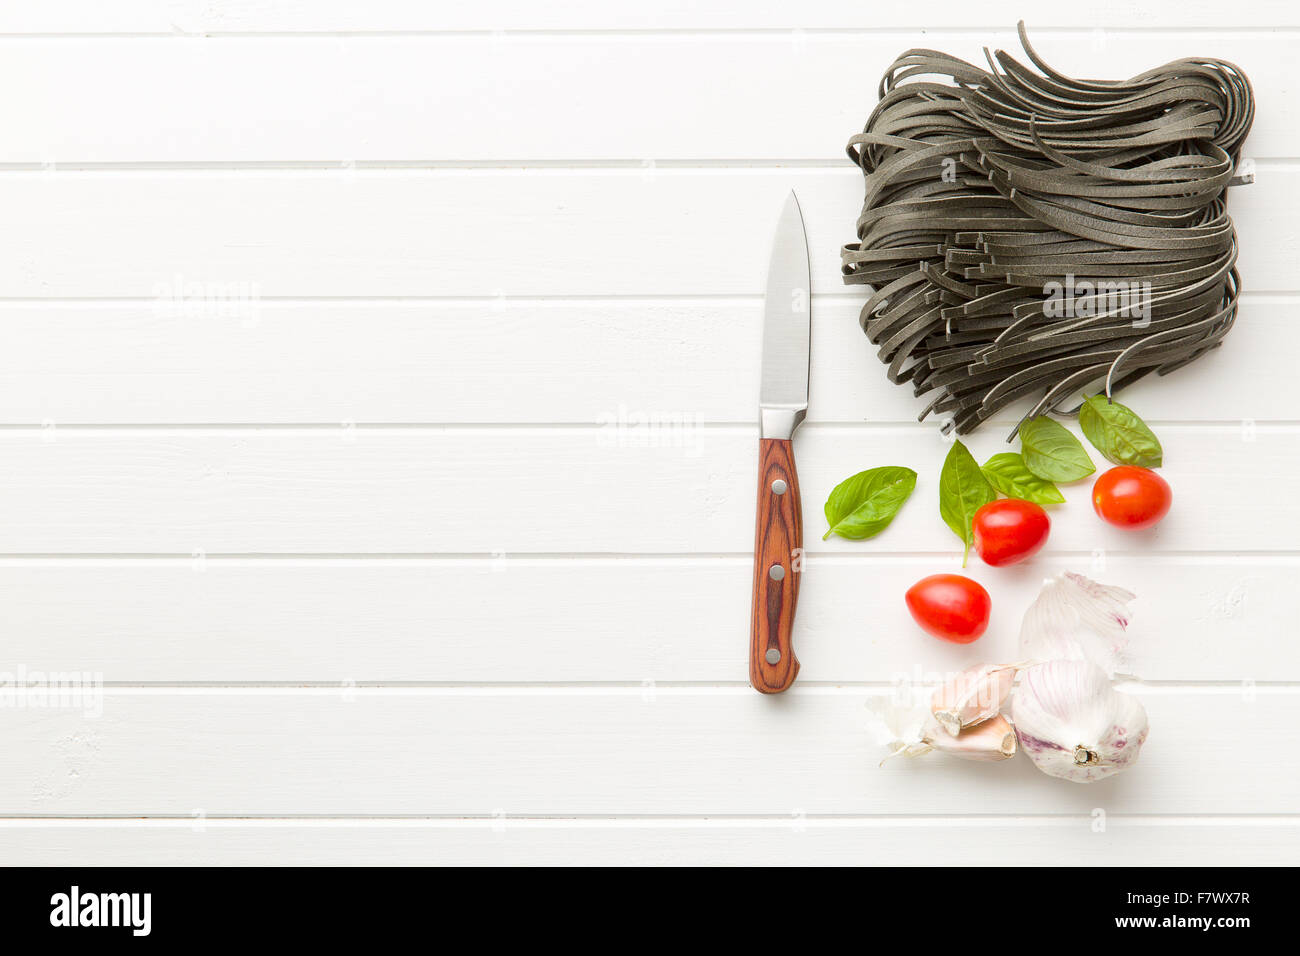 noodles, garlic, tomatoes and basil leaves on white table - Stock Image